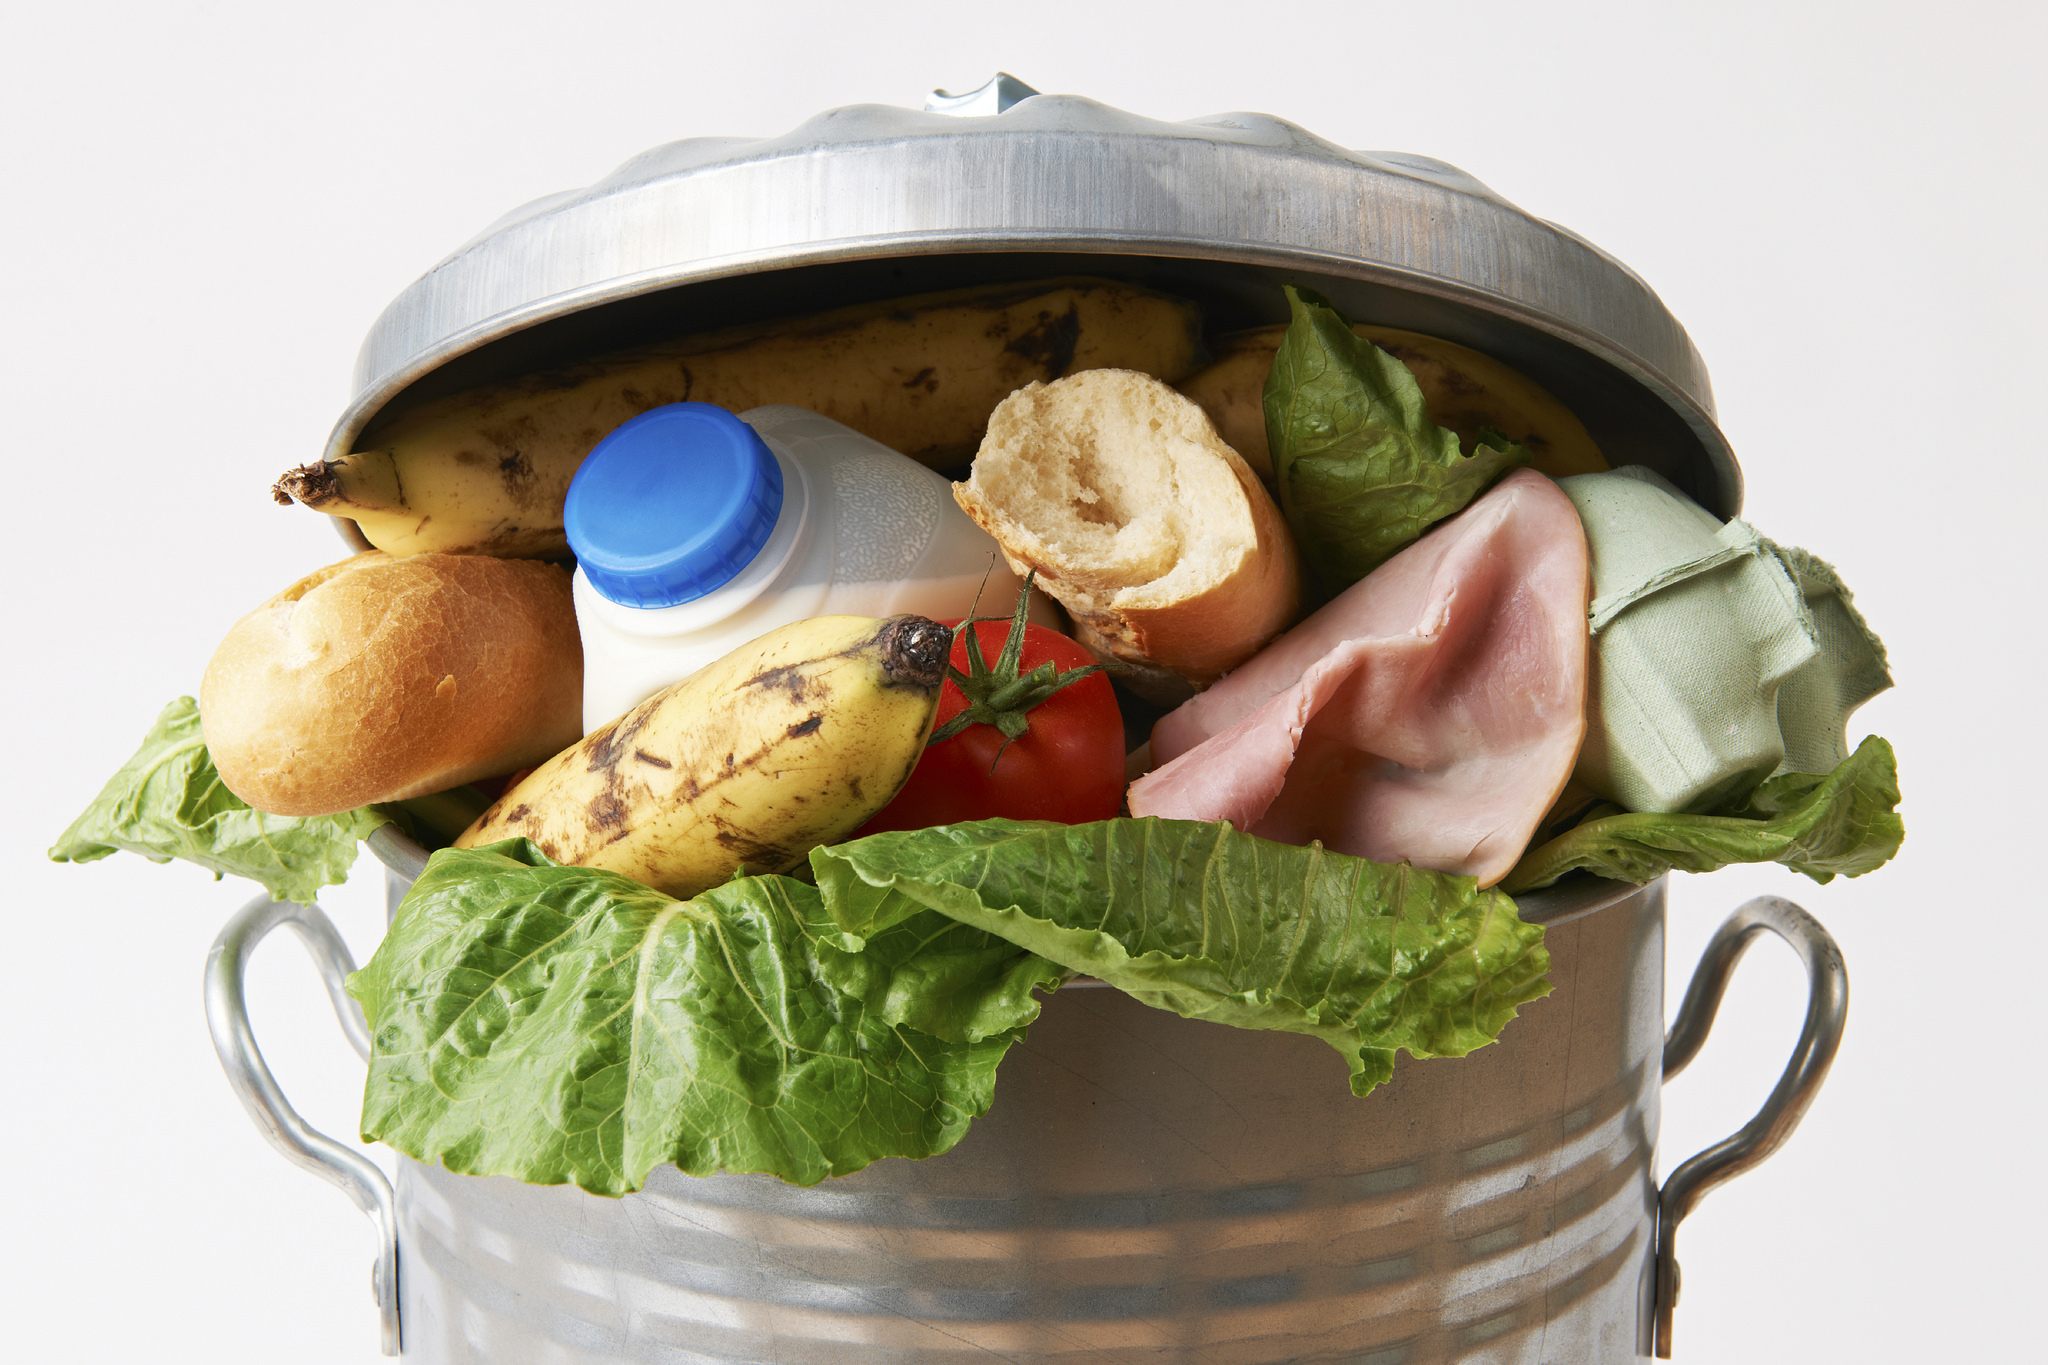 food waste in restaurants